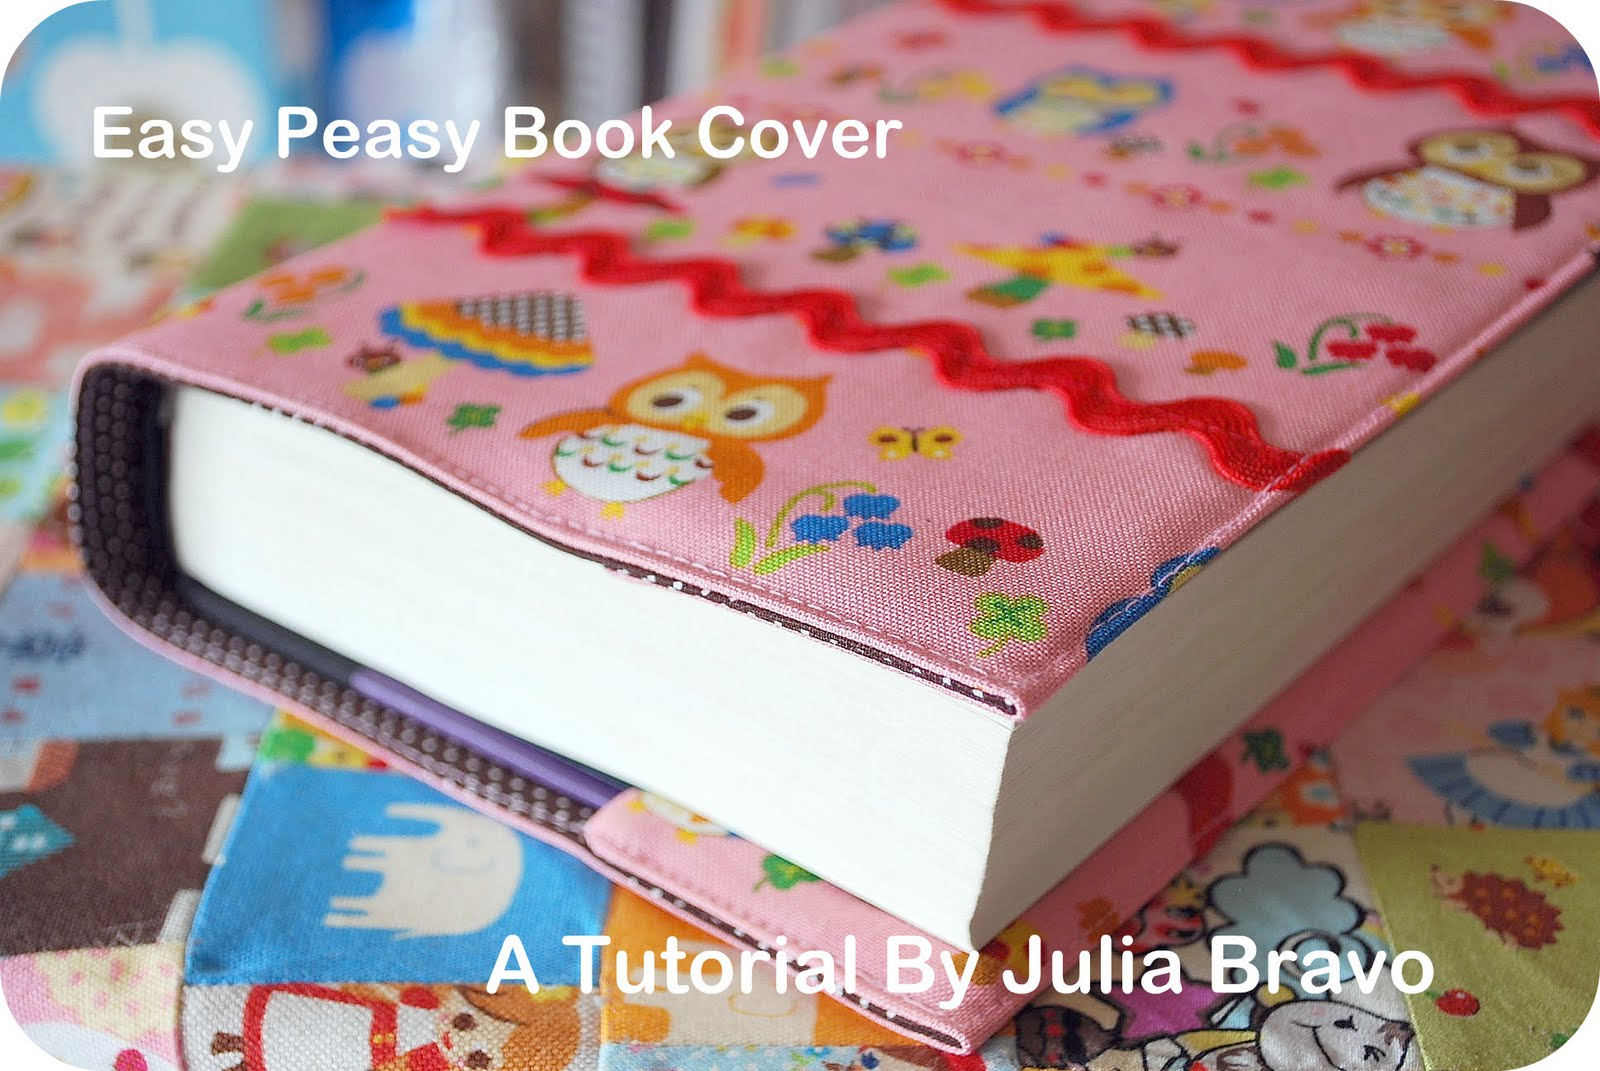 Comic Book Cover Tutorial Photo : Stitches book cover tutorial image heavy